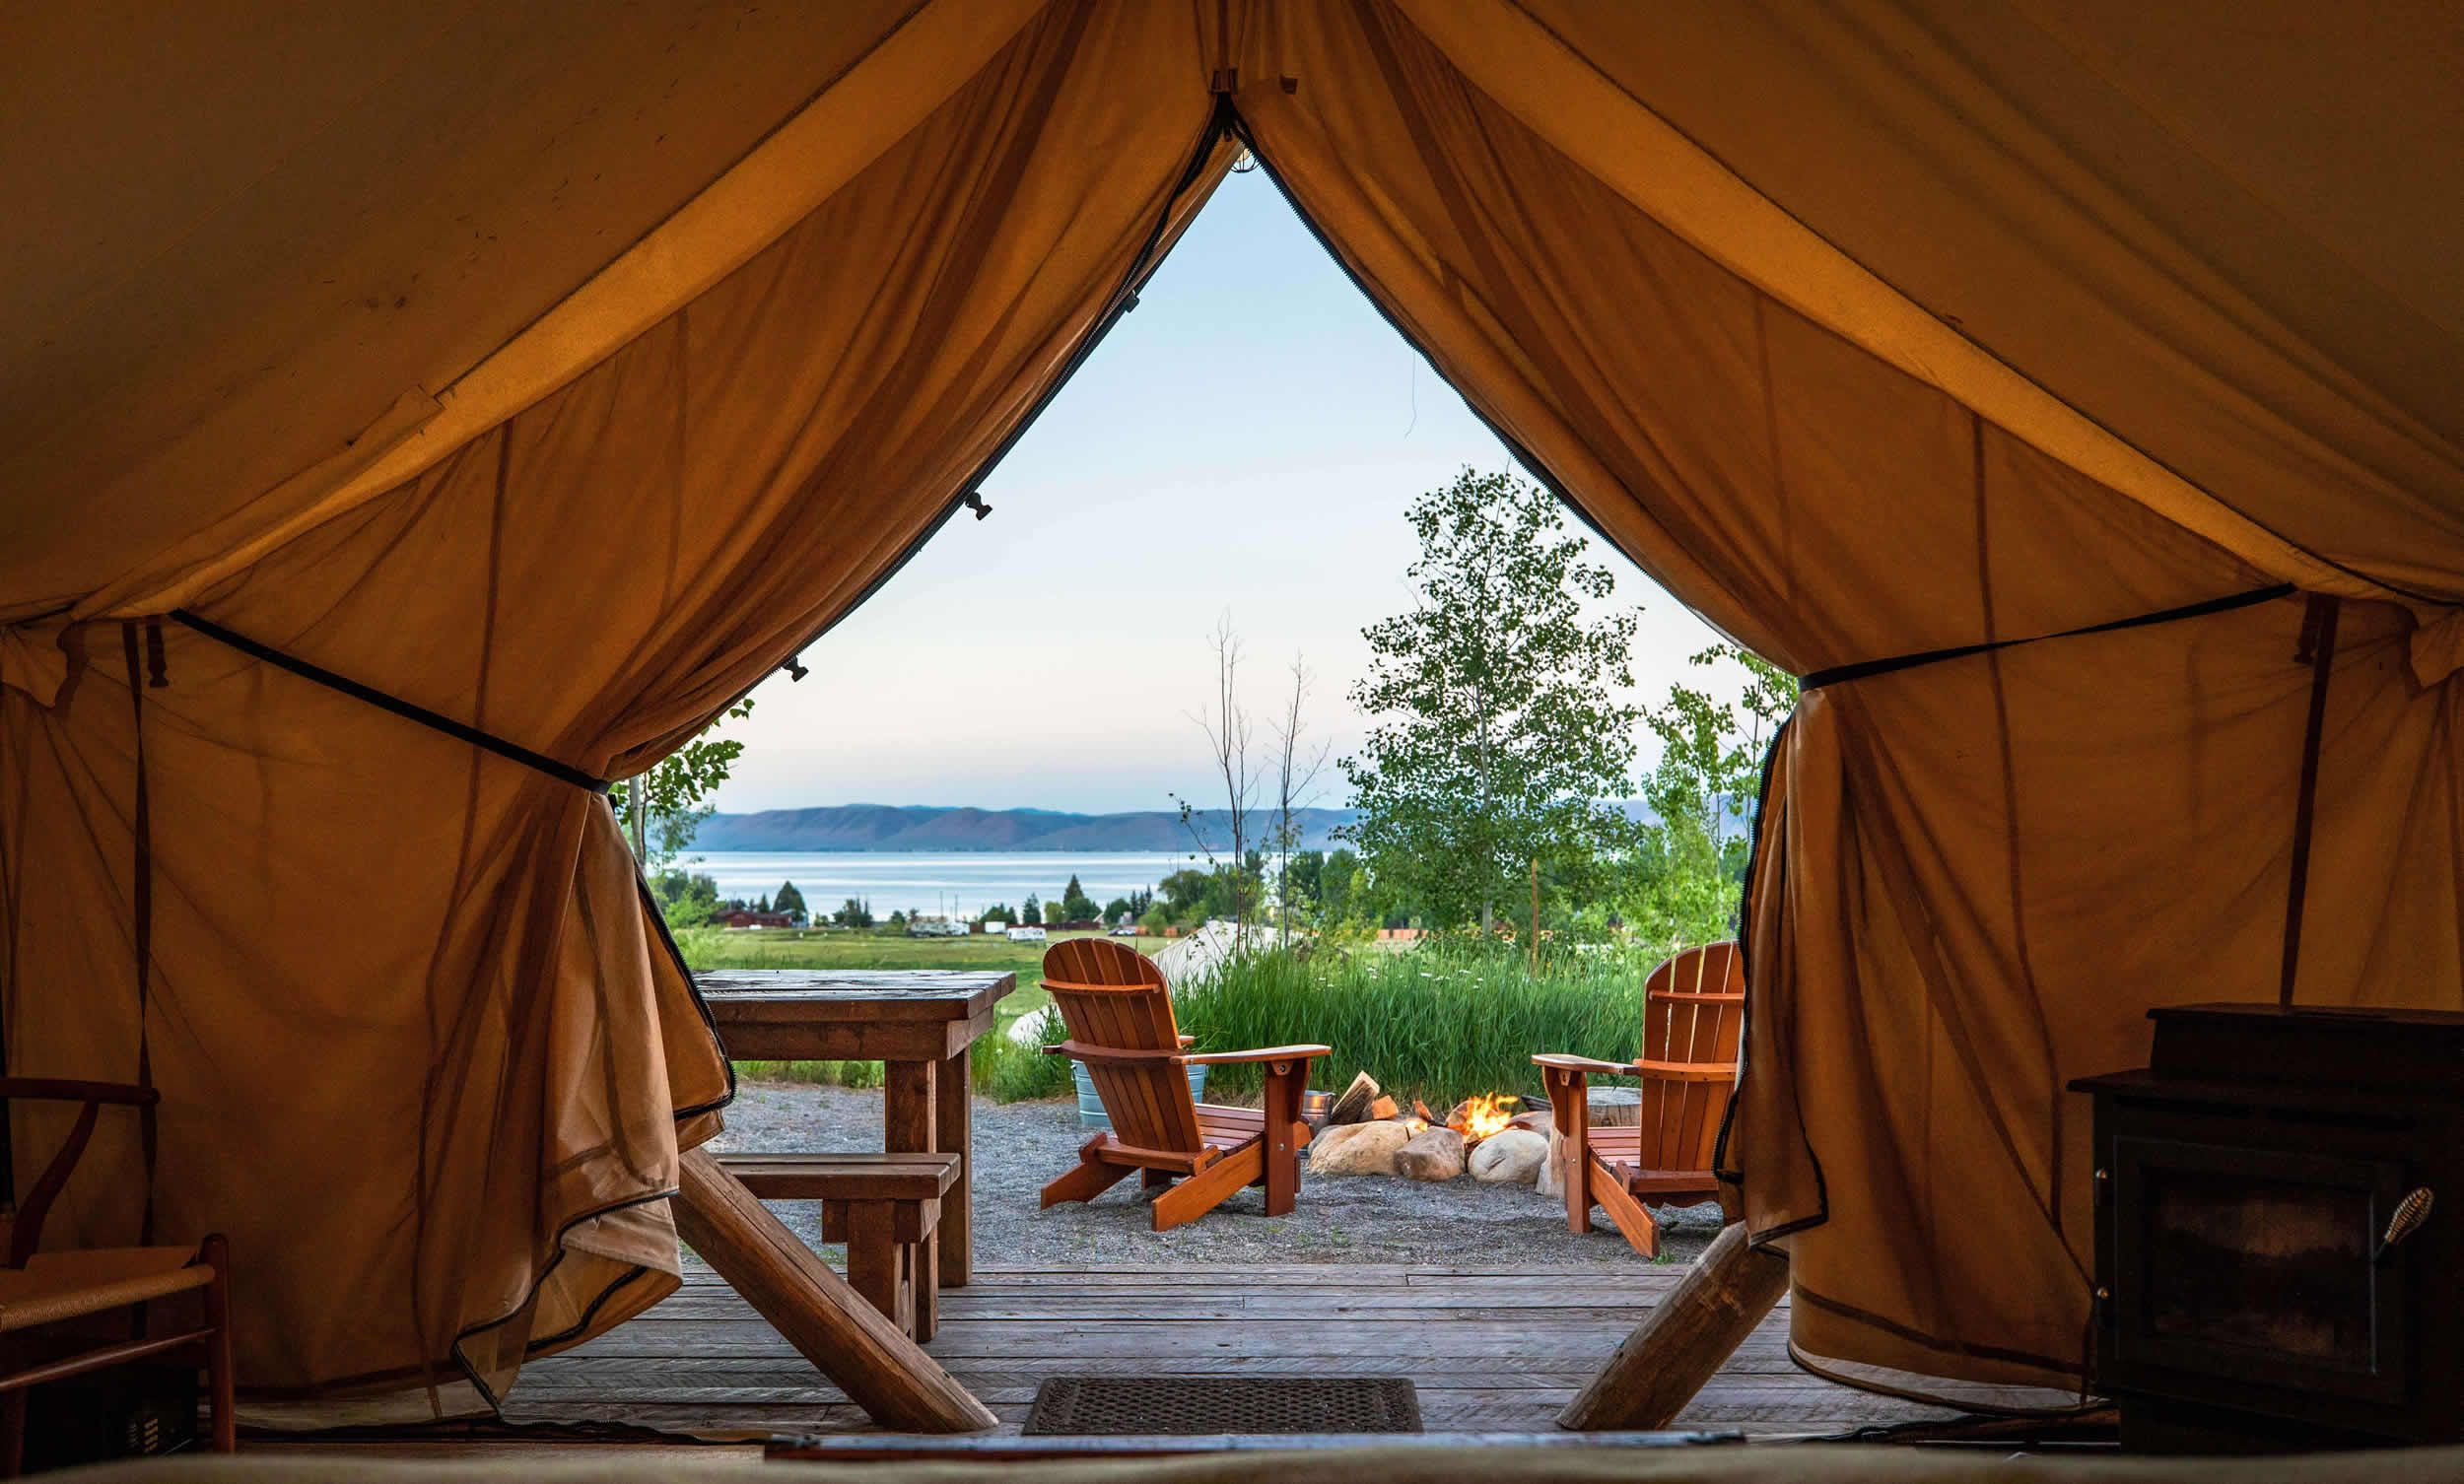 28 Best Glamping Destinations in the U.S. - Luxury Camping Near Me